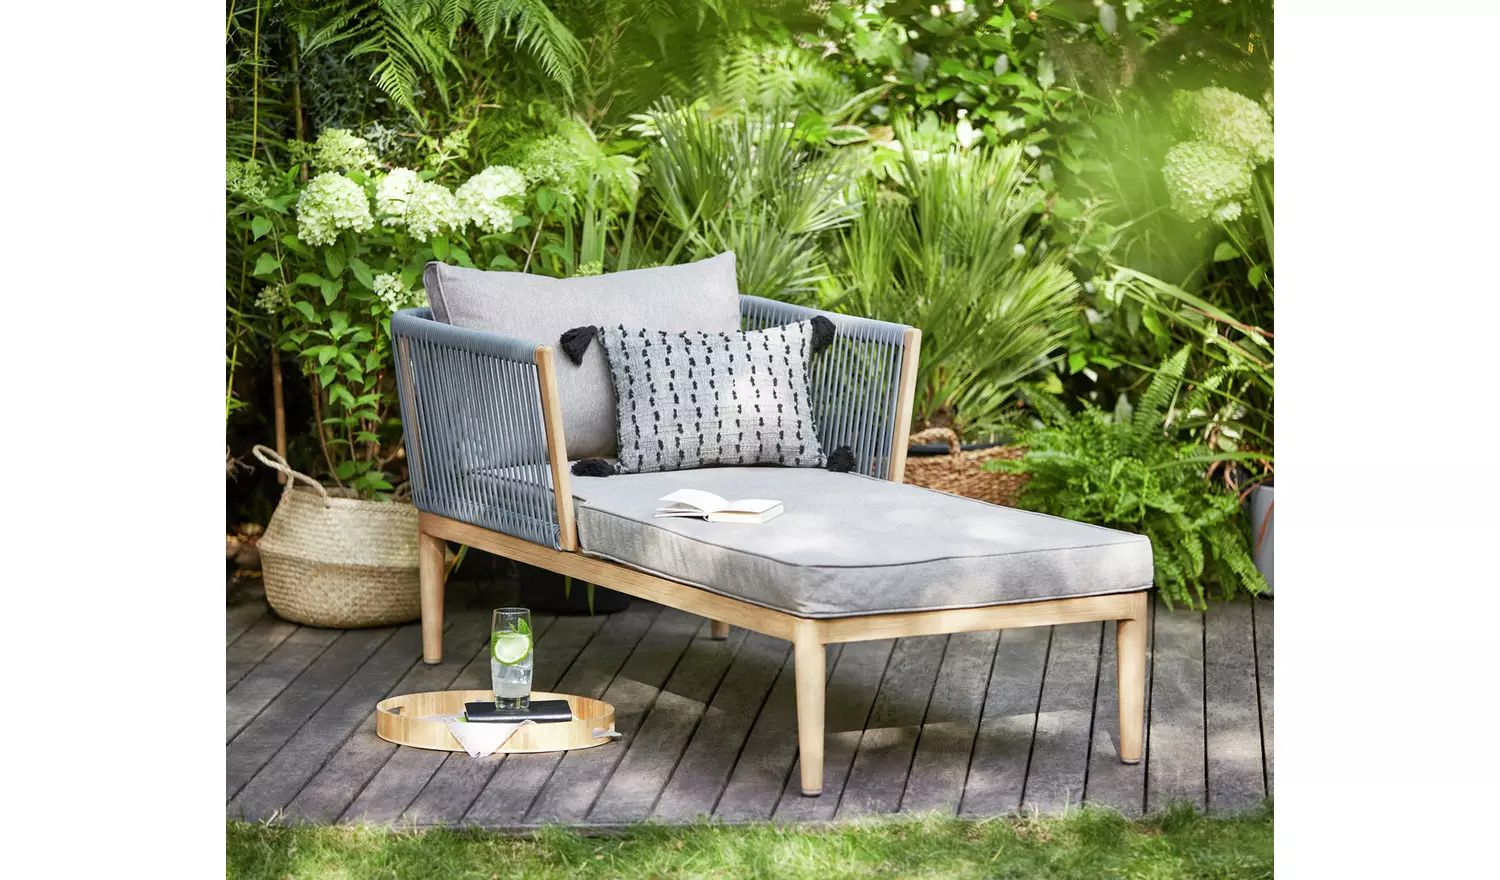 11 Garden Sun Loungers For 11 - Best Garden Loungers To Buy